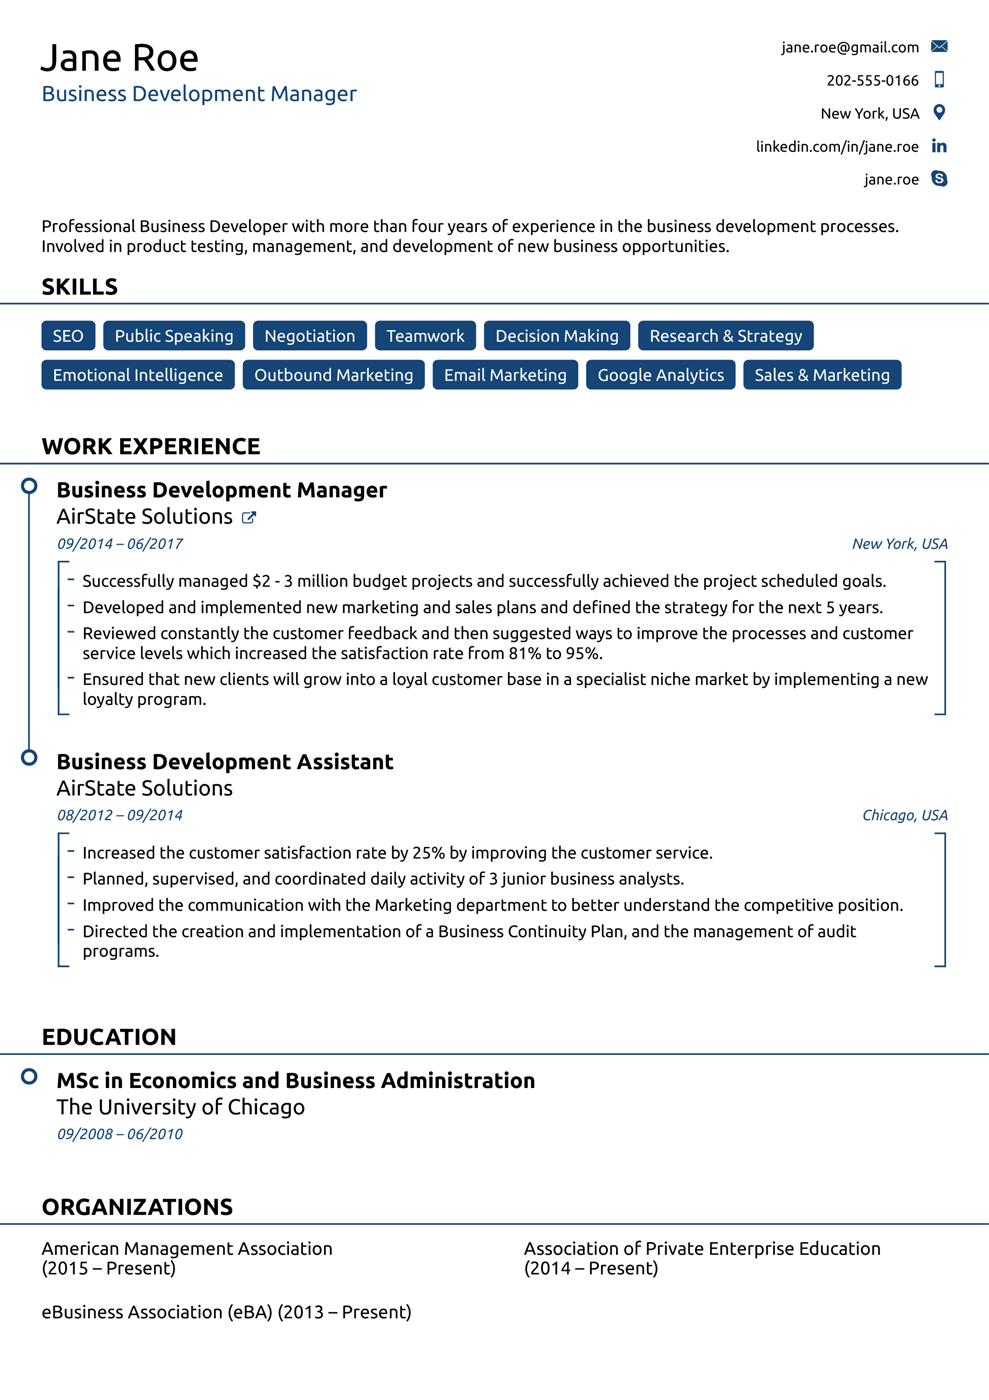 Resume Stunning 448 Professional Resume Templates As They Should Be [48]